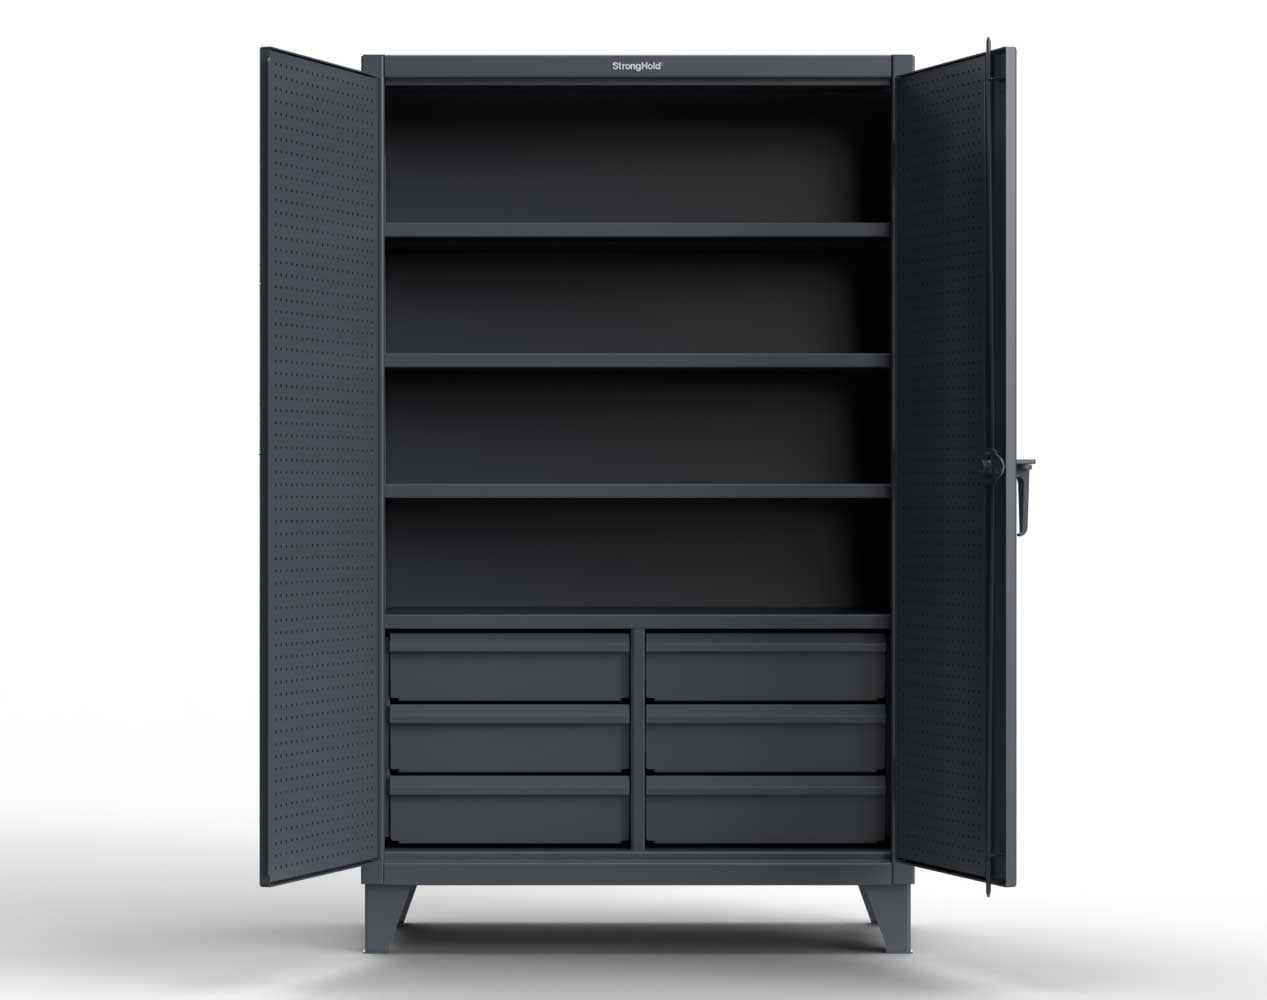 Extra Heavy Duty 12 GA Cabinet with 4 Slide-Out Shelves, 6 Half-Width Drawers with Dividers  – 48 In. W x 24 In. D x 78 In. H